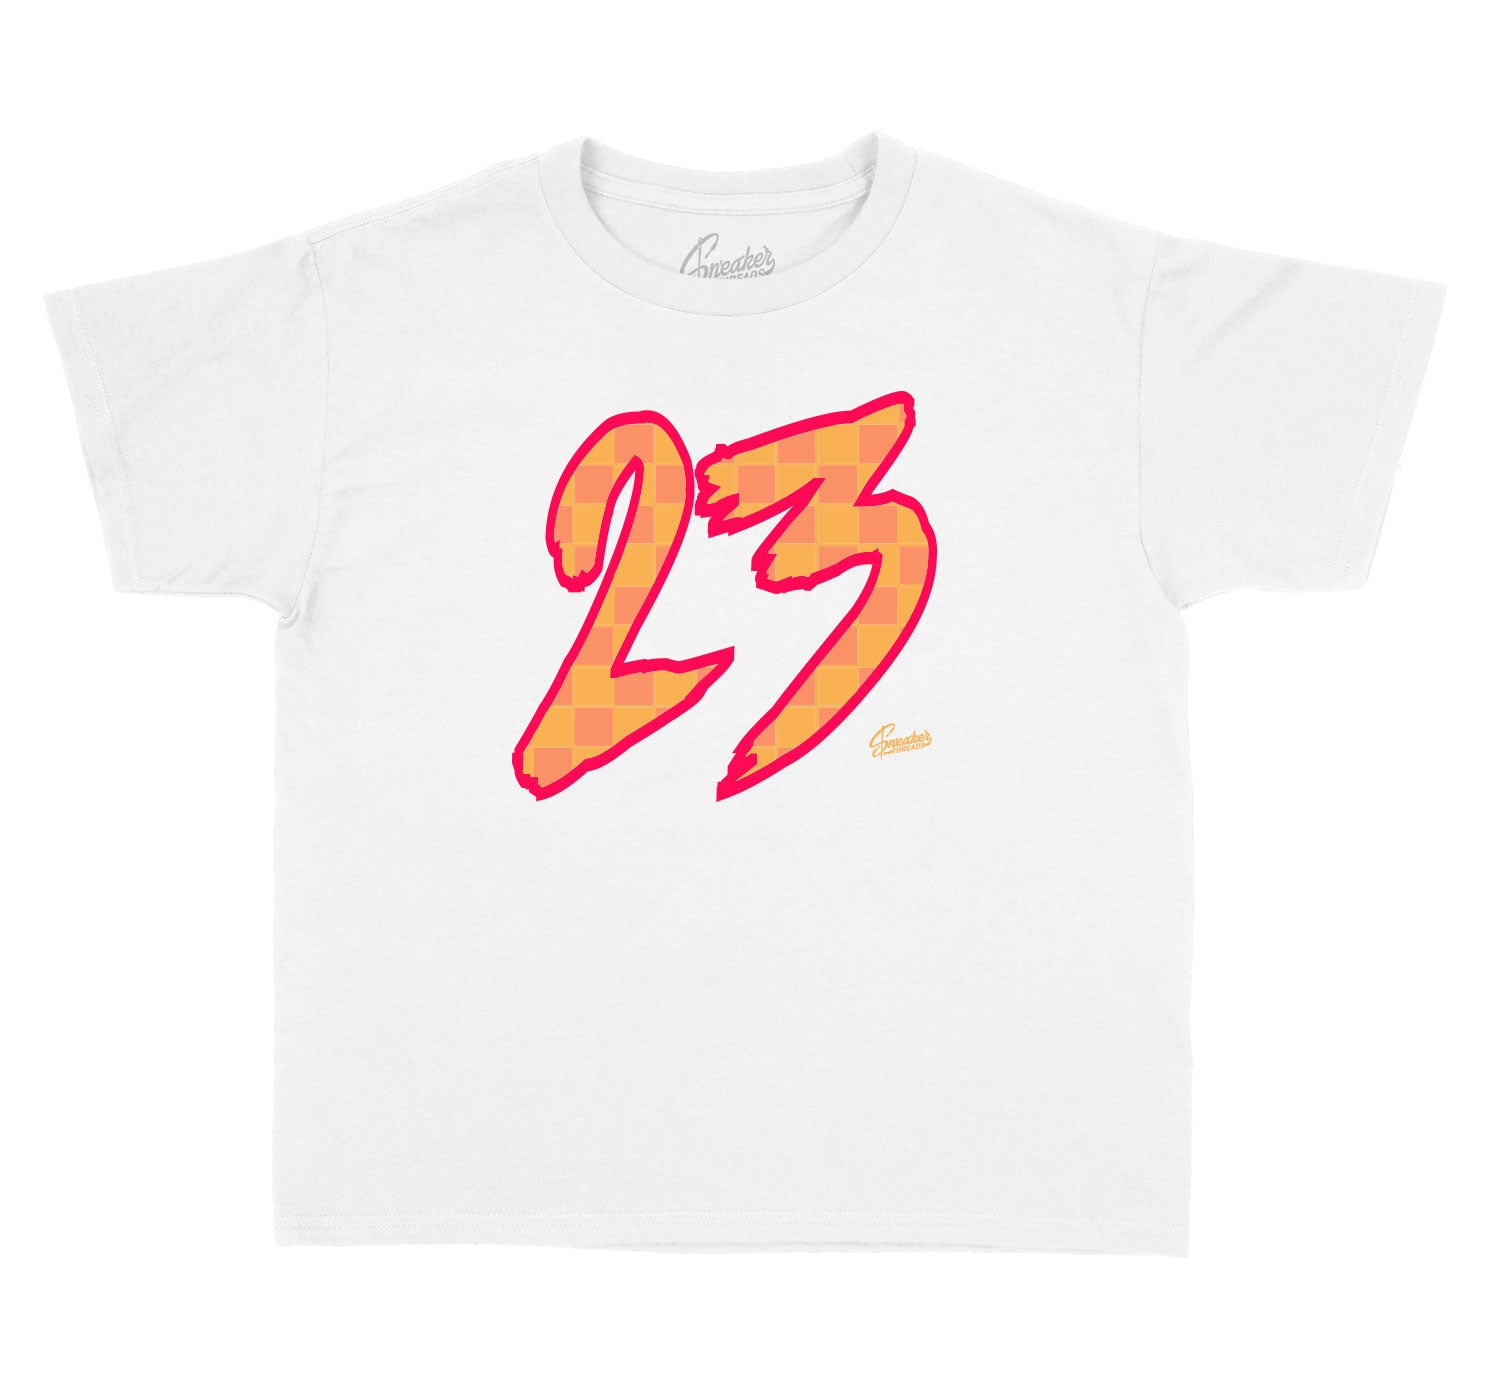 Hot Punch 12 shirts for toddlers and kids match perfect